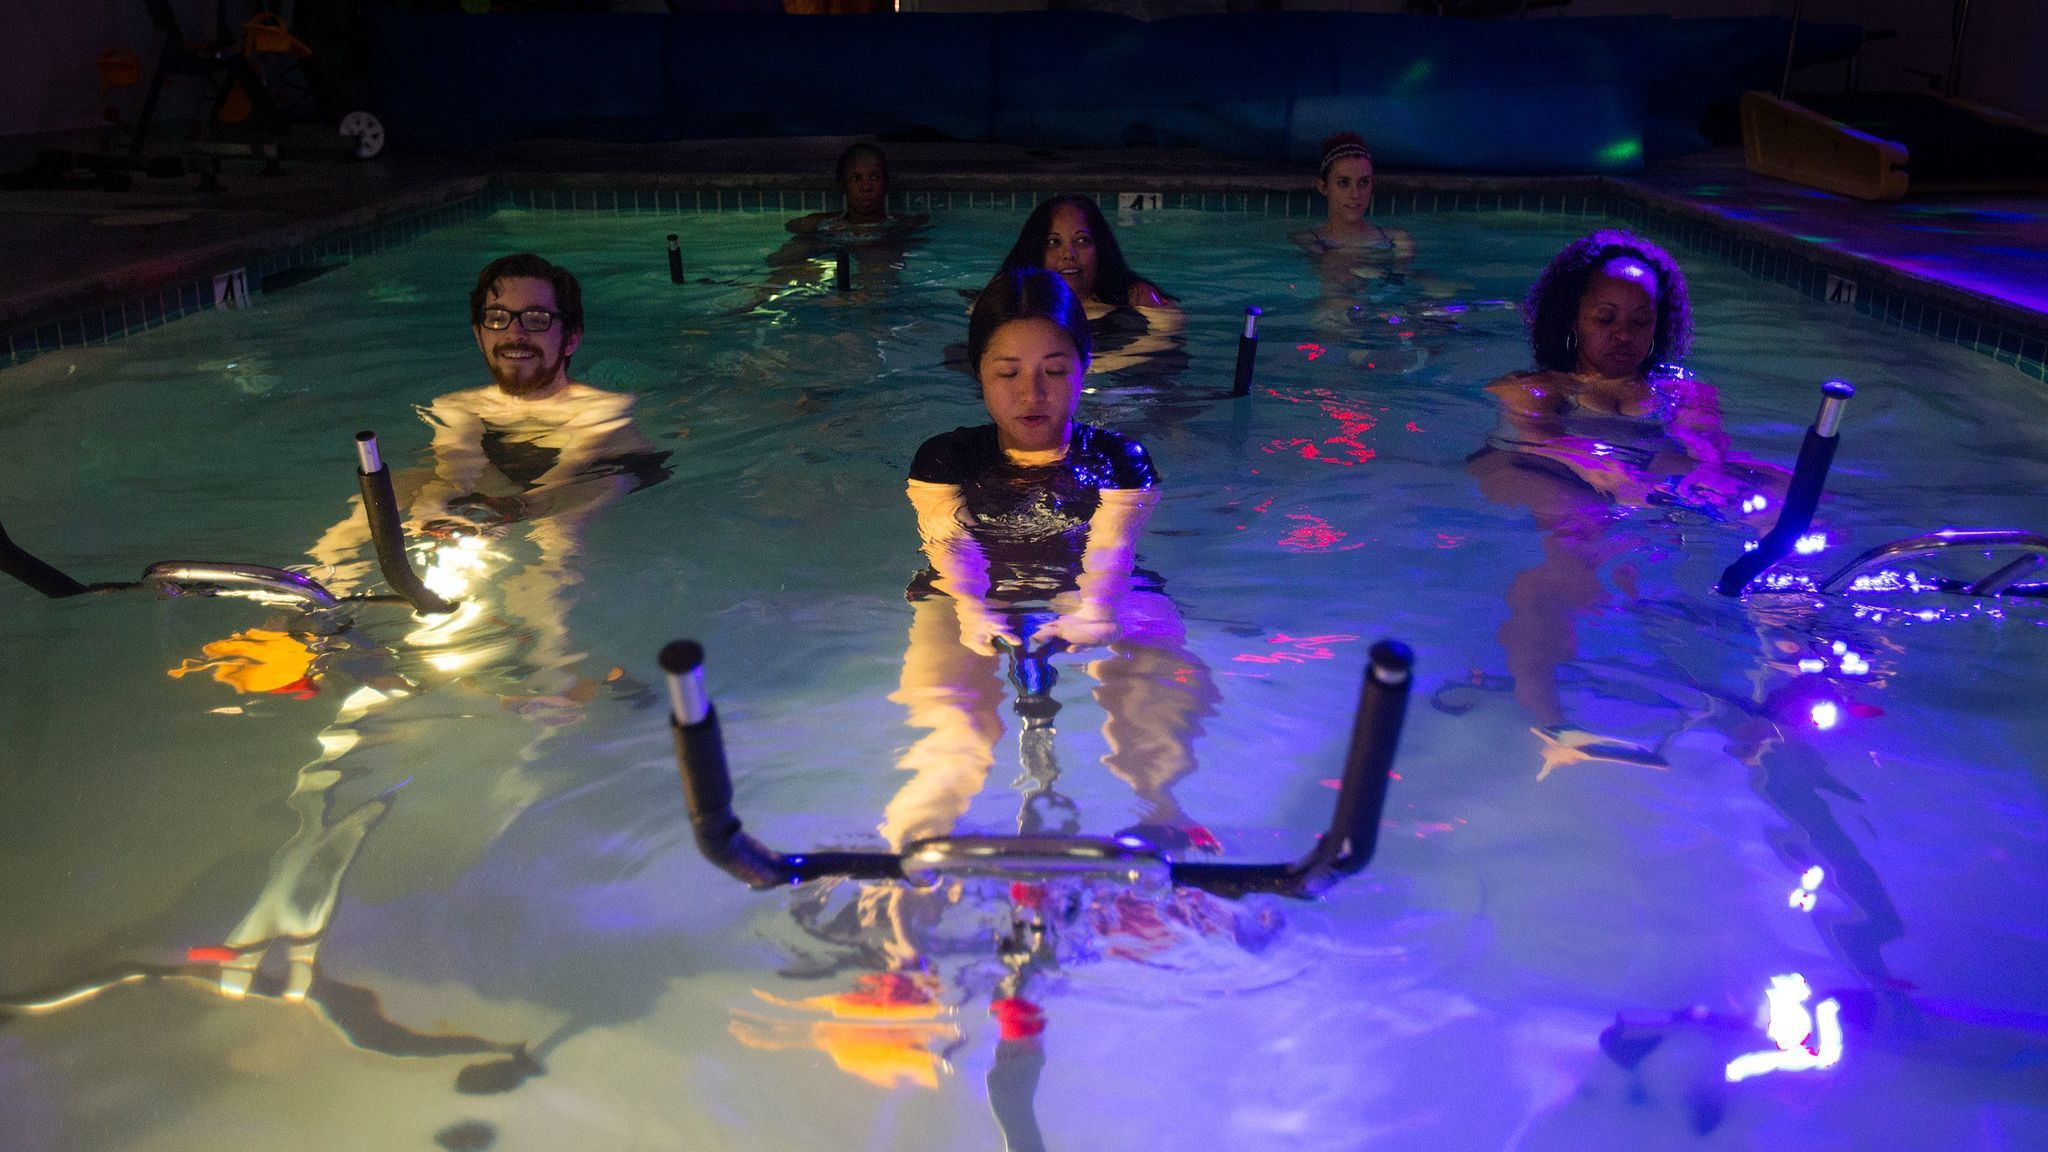 Band work is part of the aqua cycling class.